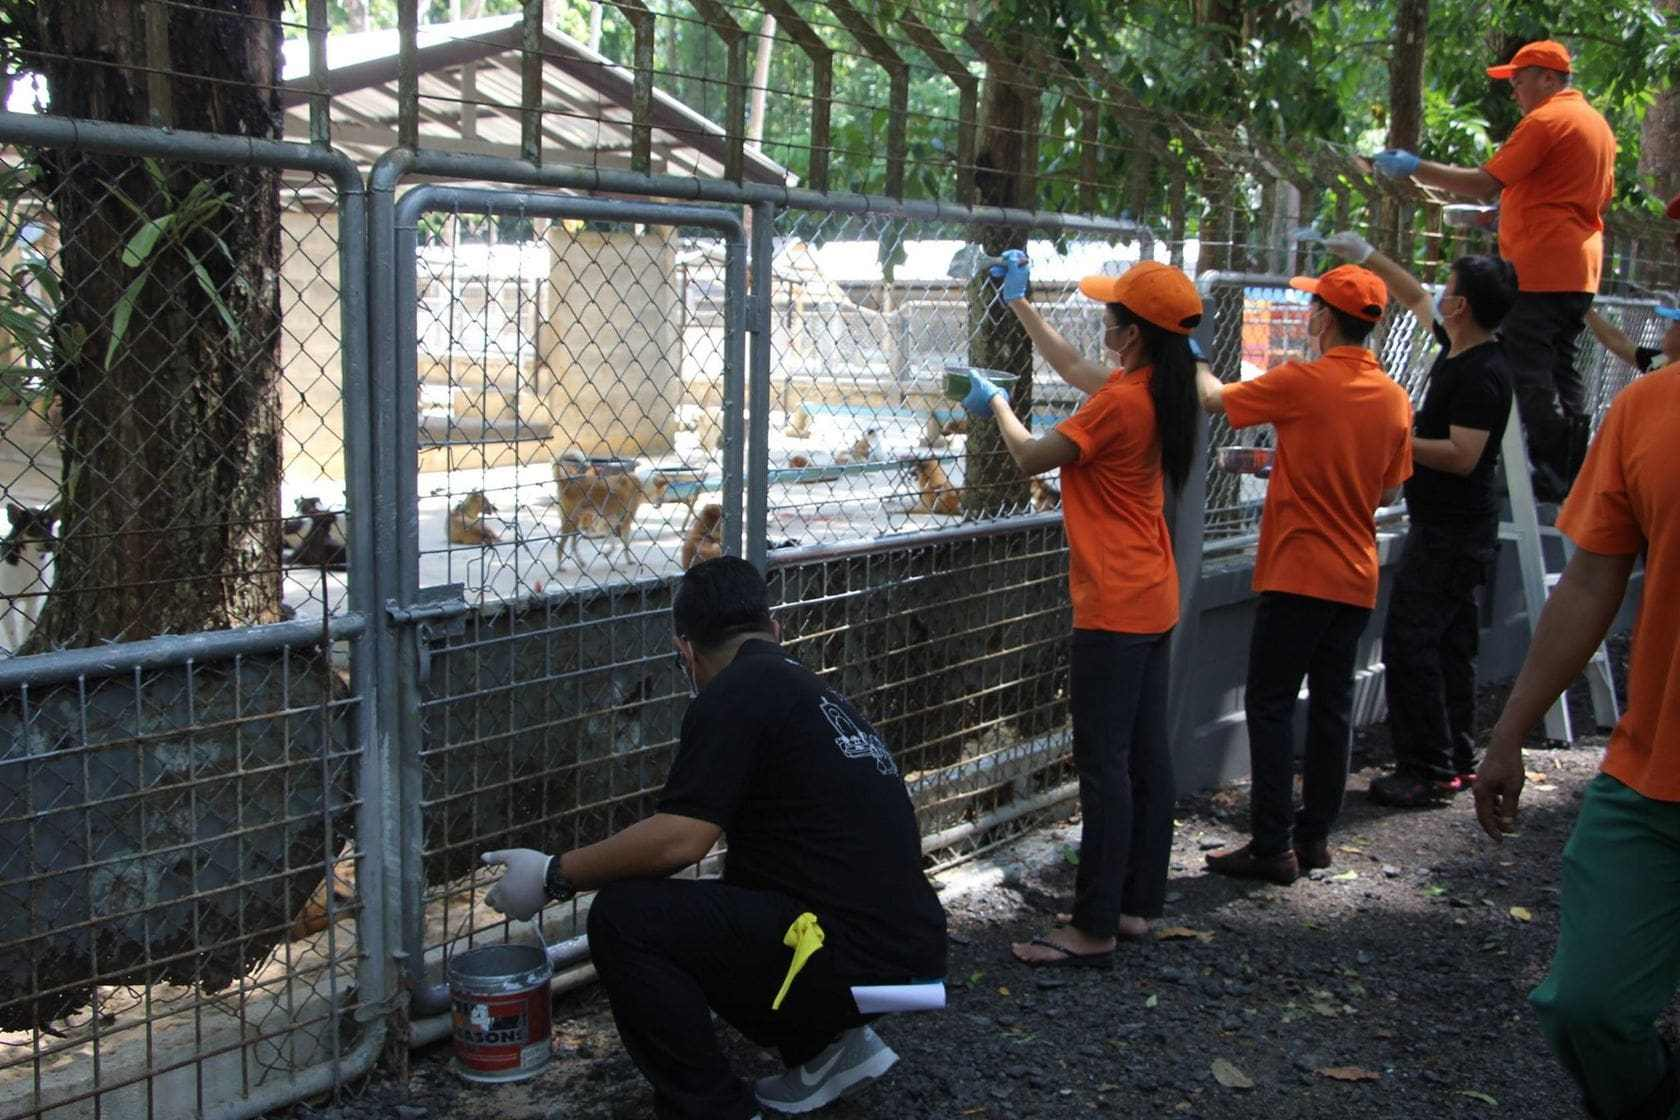 Governor rolls up his sleeves in a clean-up day at Phuket's stray dog shelter | The Thaiger